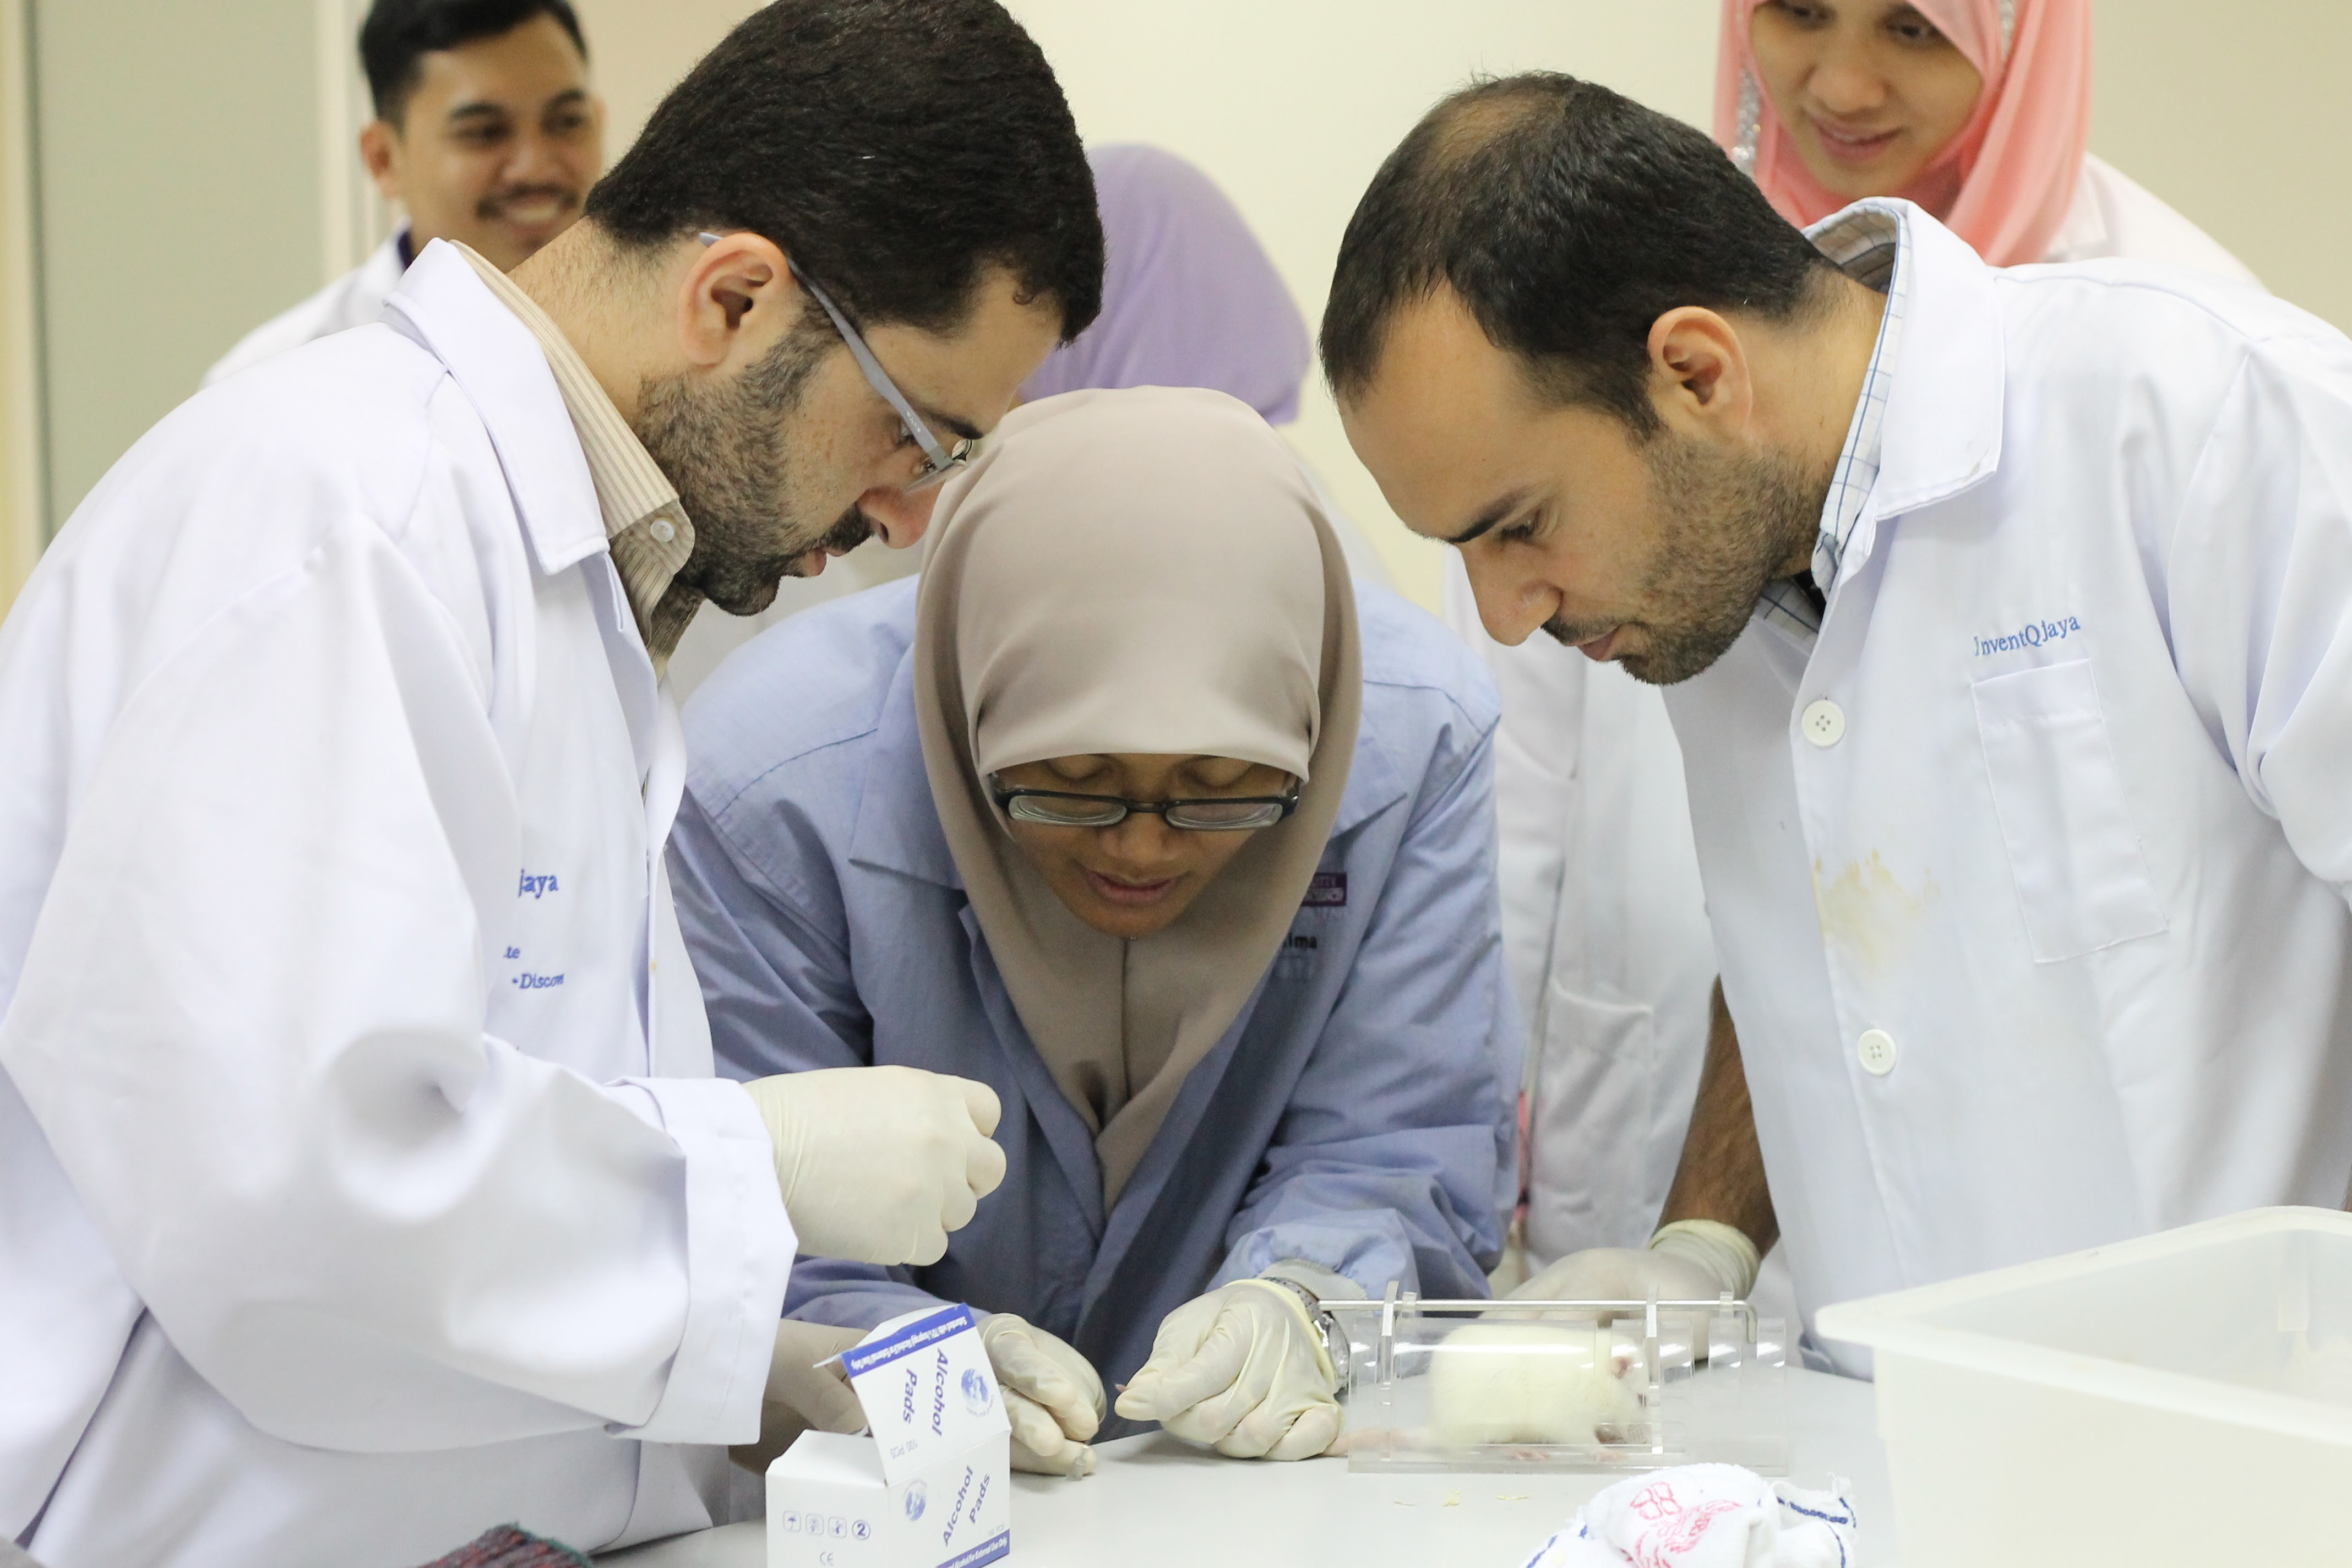 Diversity Beyond Borders: Pharmacy students, graduates and